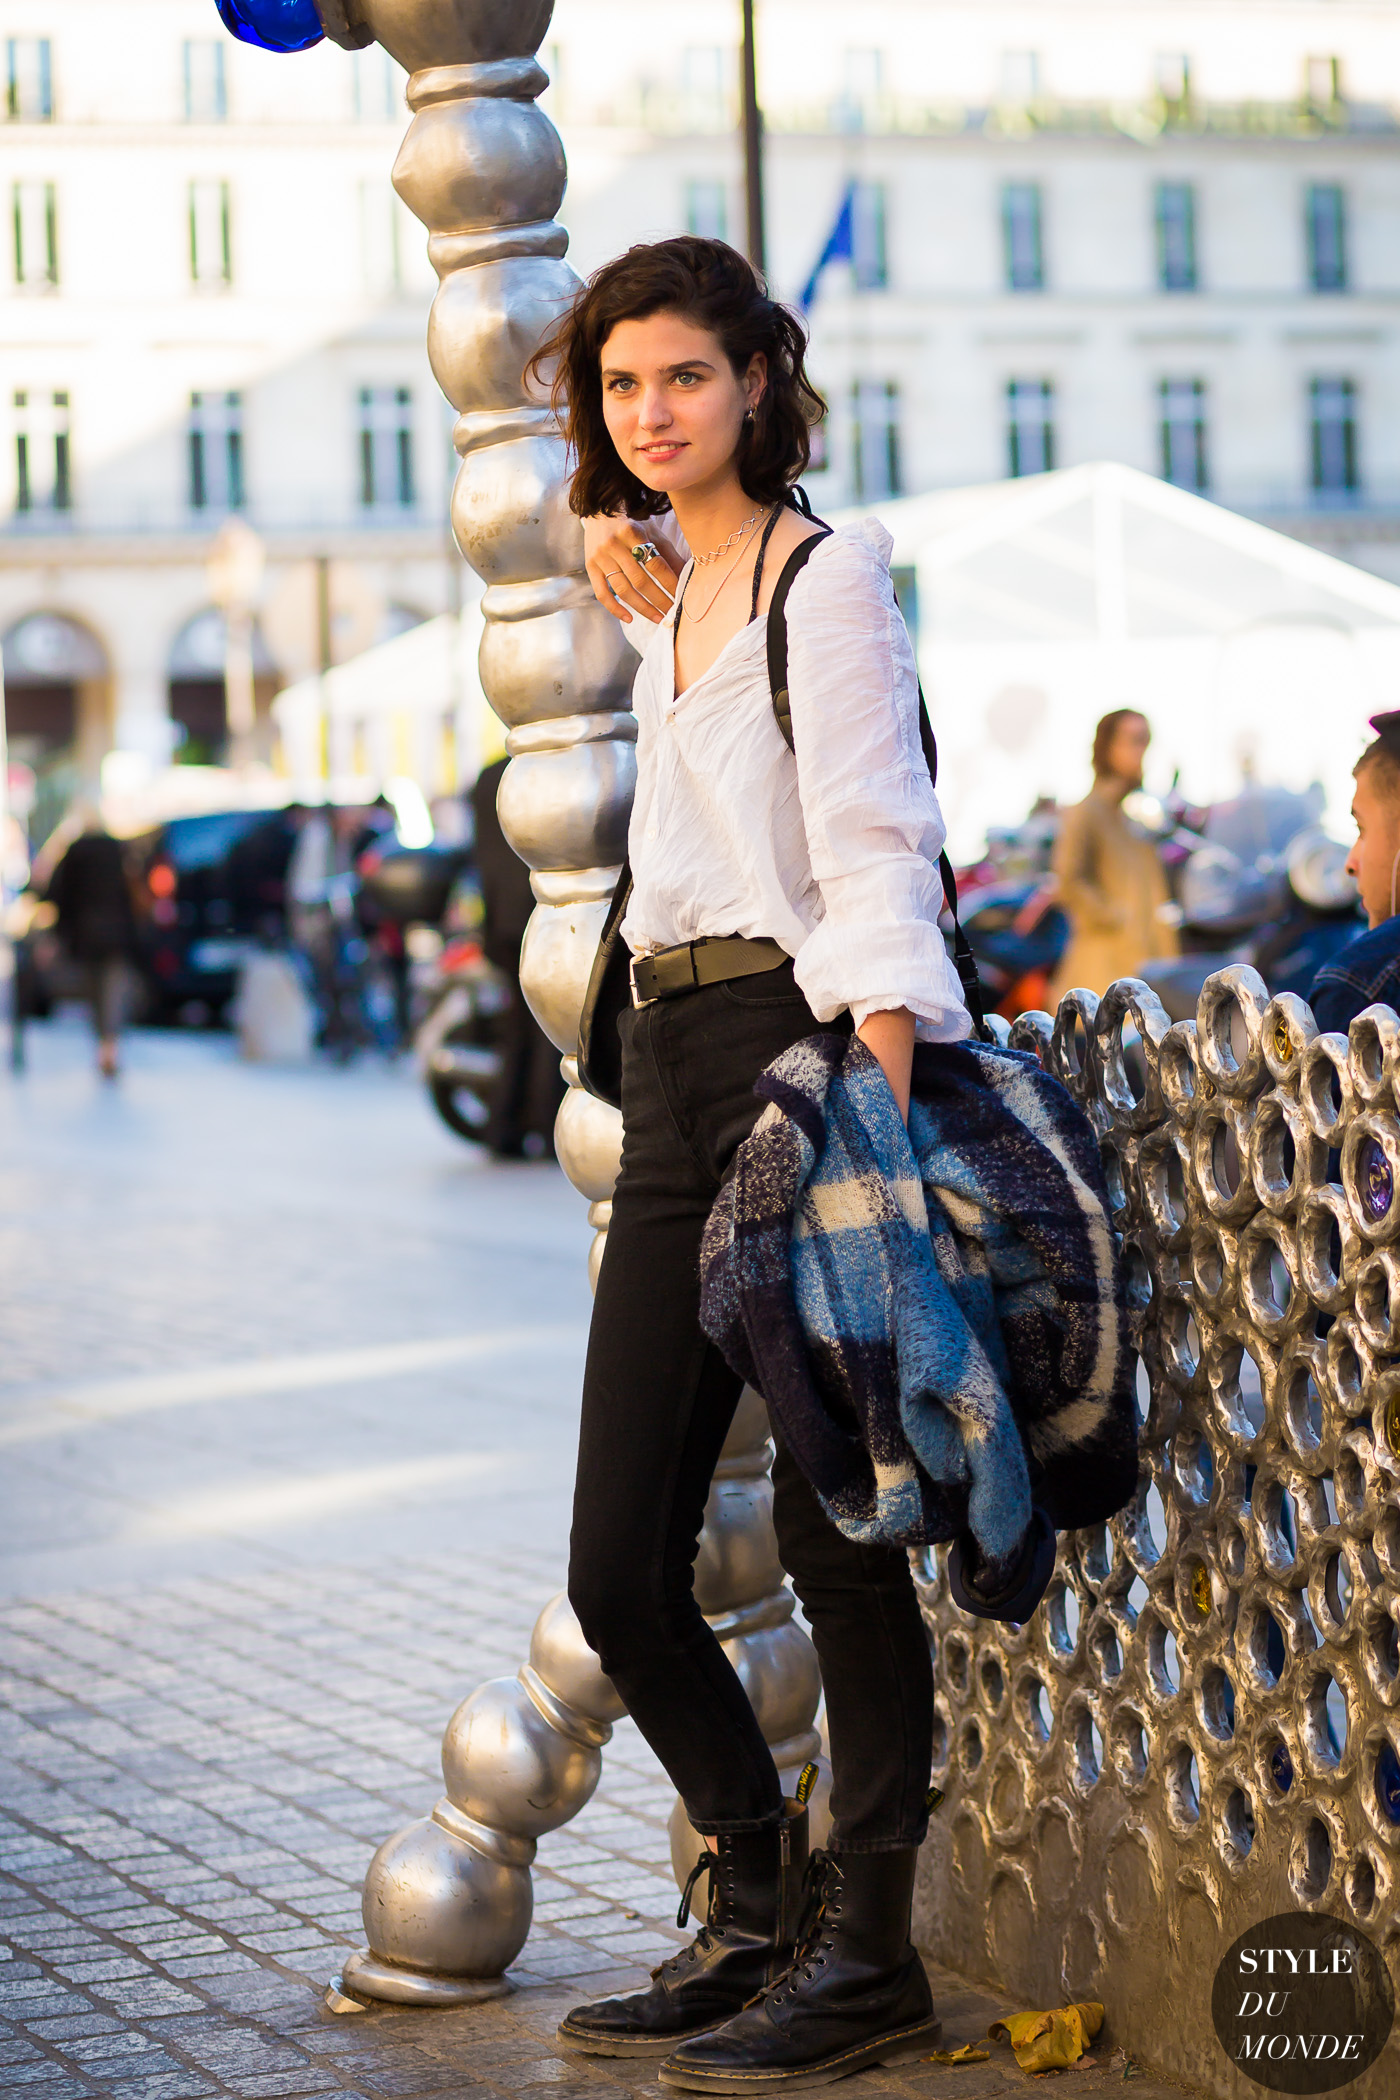 Manon Leloup Street Style Street Fashion Streetsnaps by STYLEDUMONDE Street Style Fashion Photography